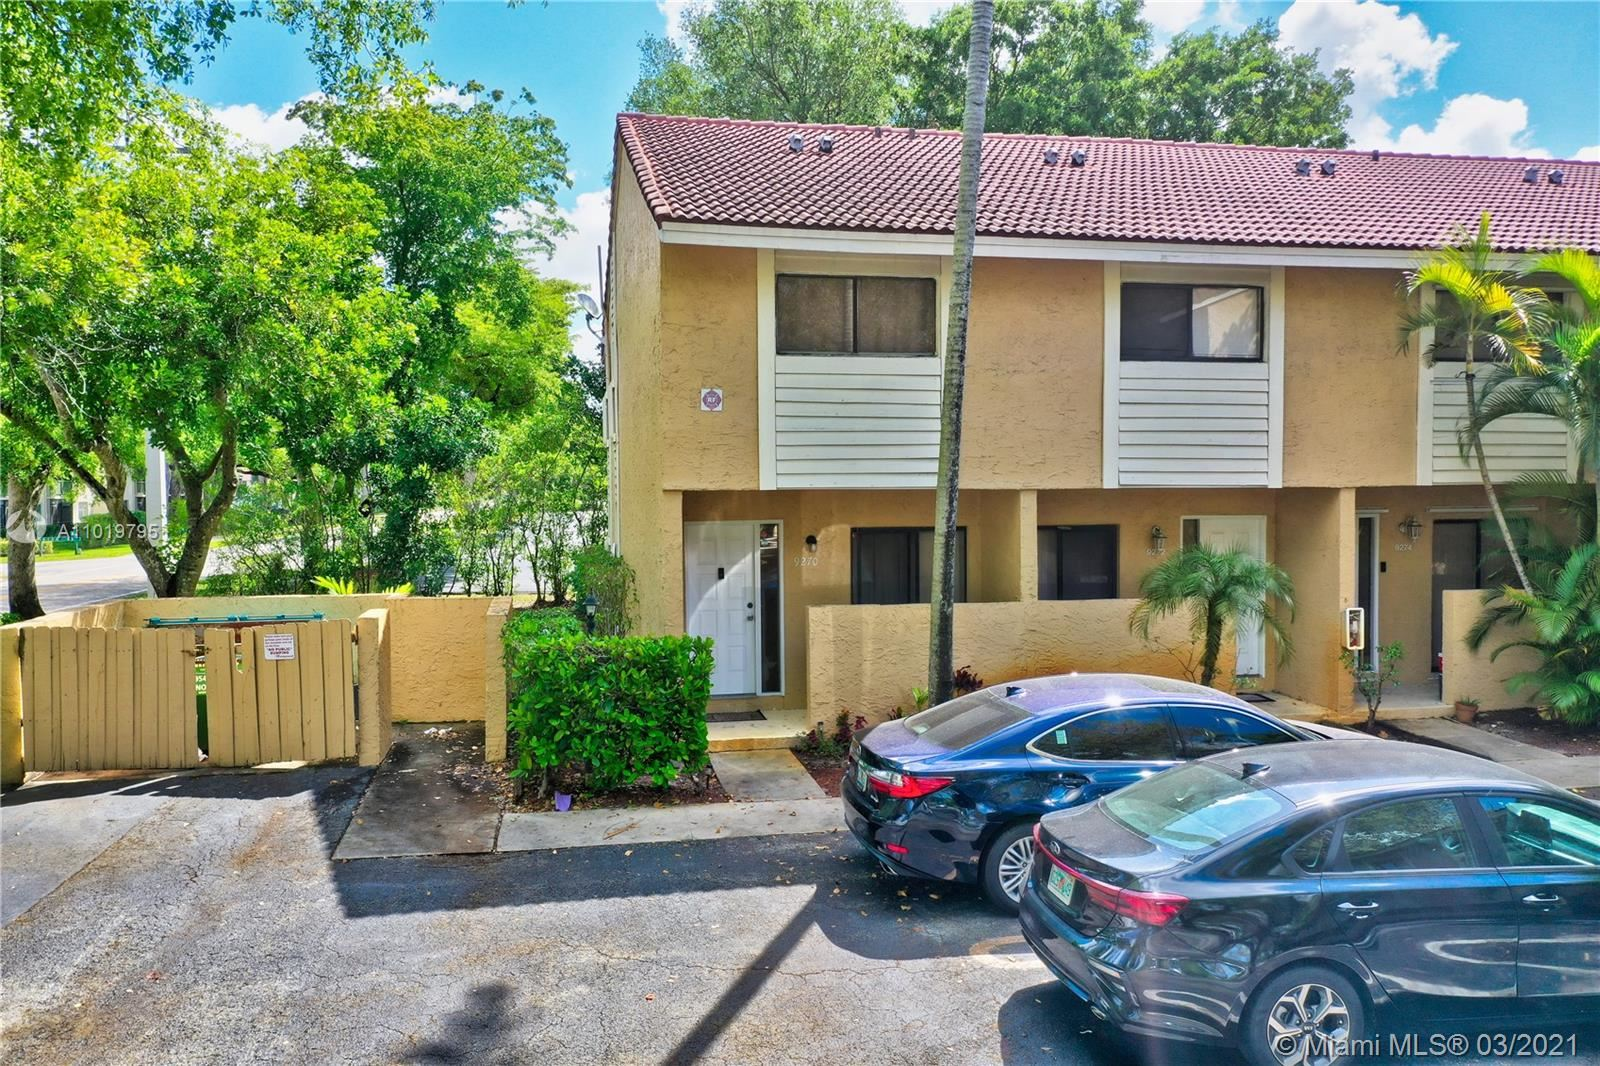 9270 NW 40th St, Coral Springs, FL 33065 - #: A11019795